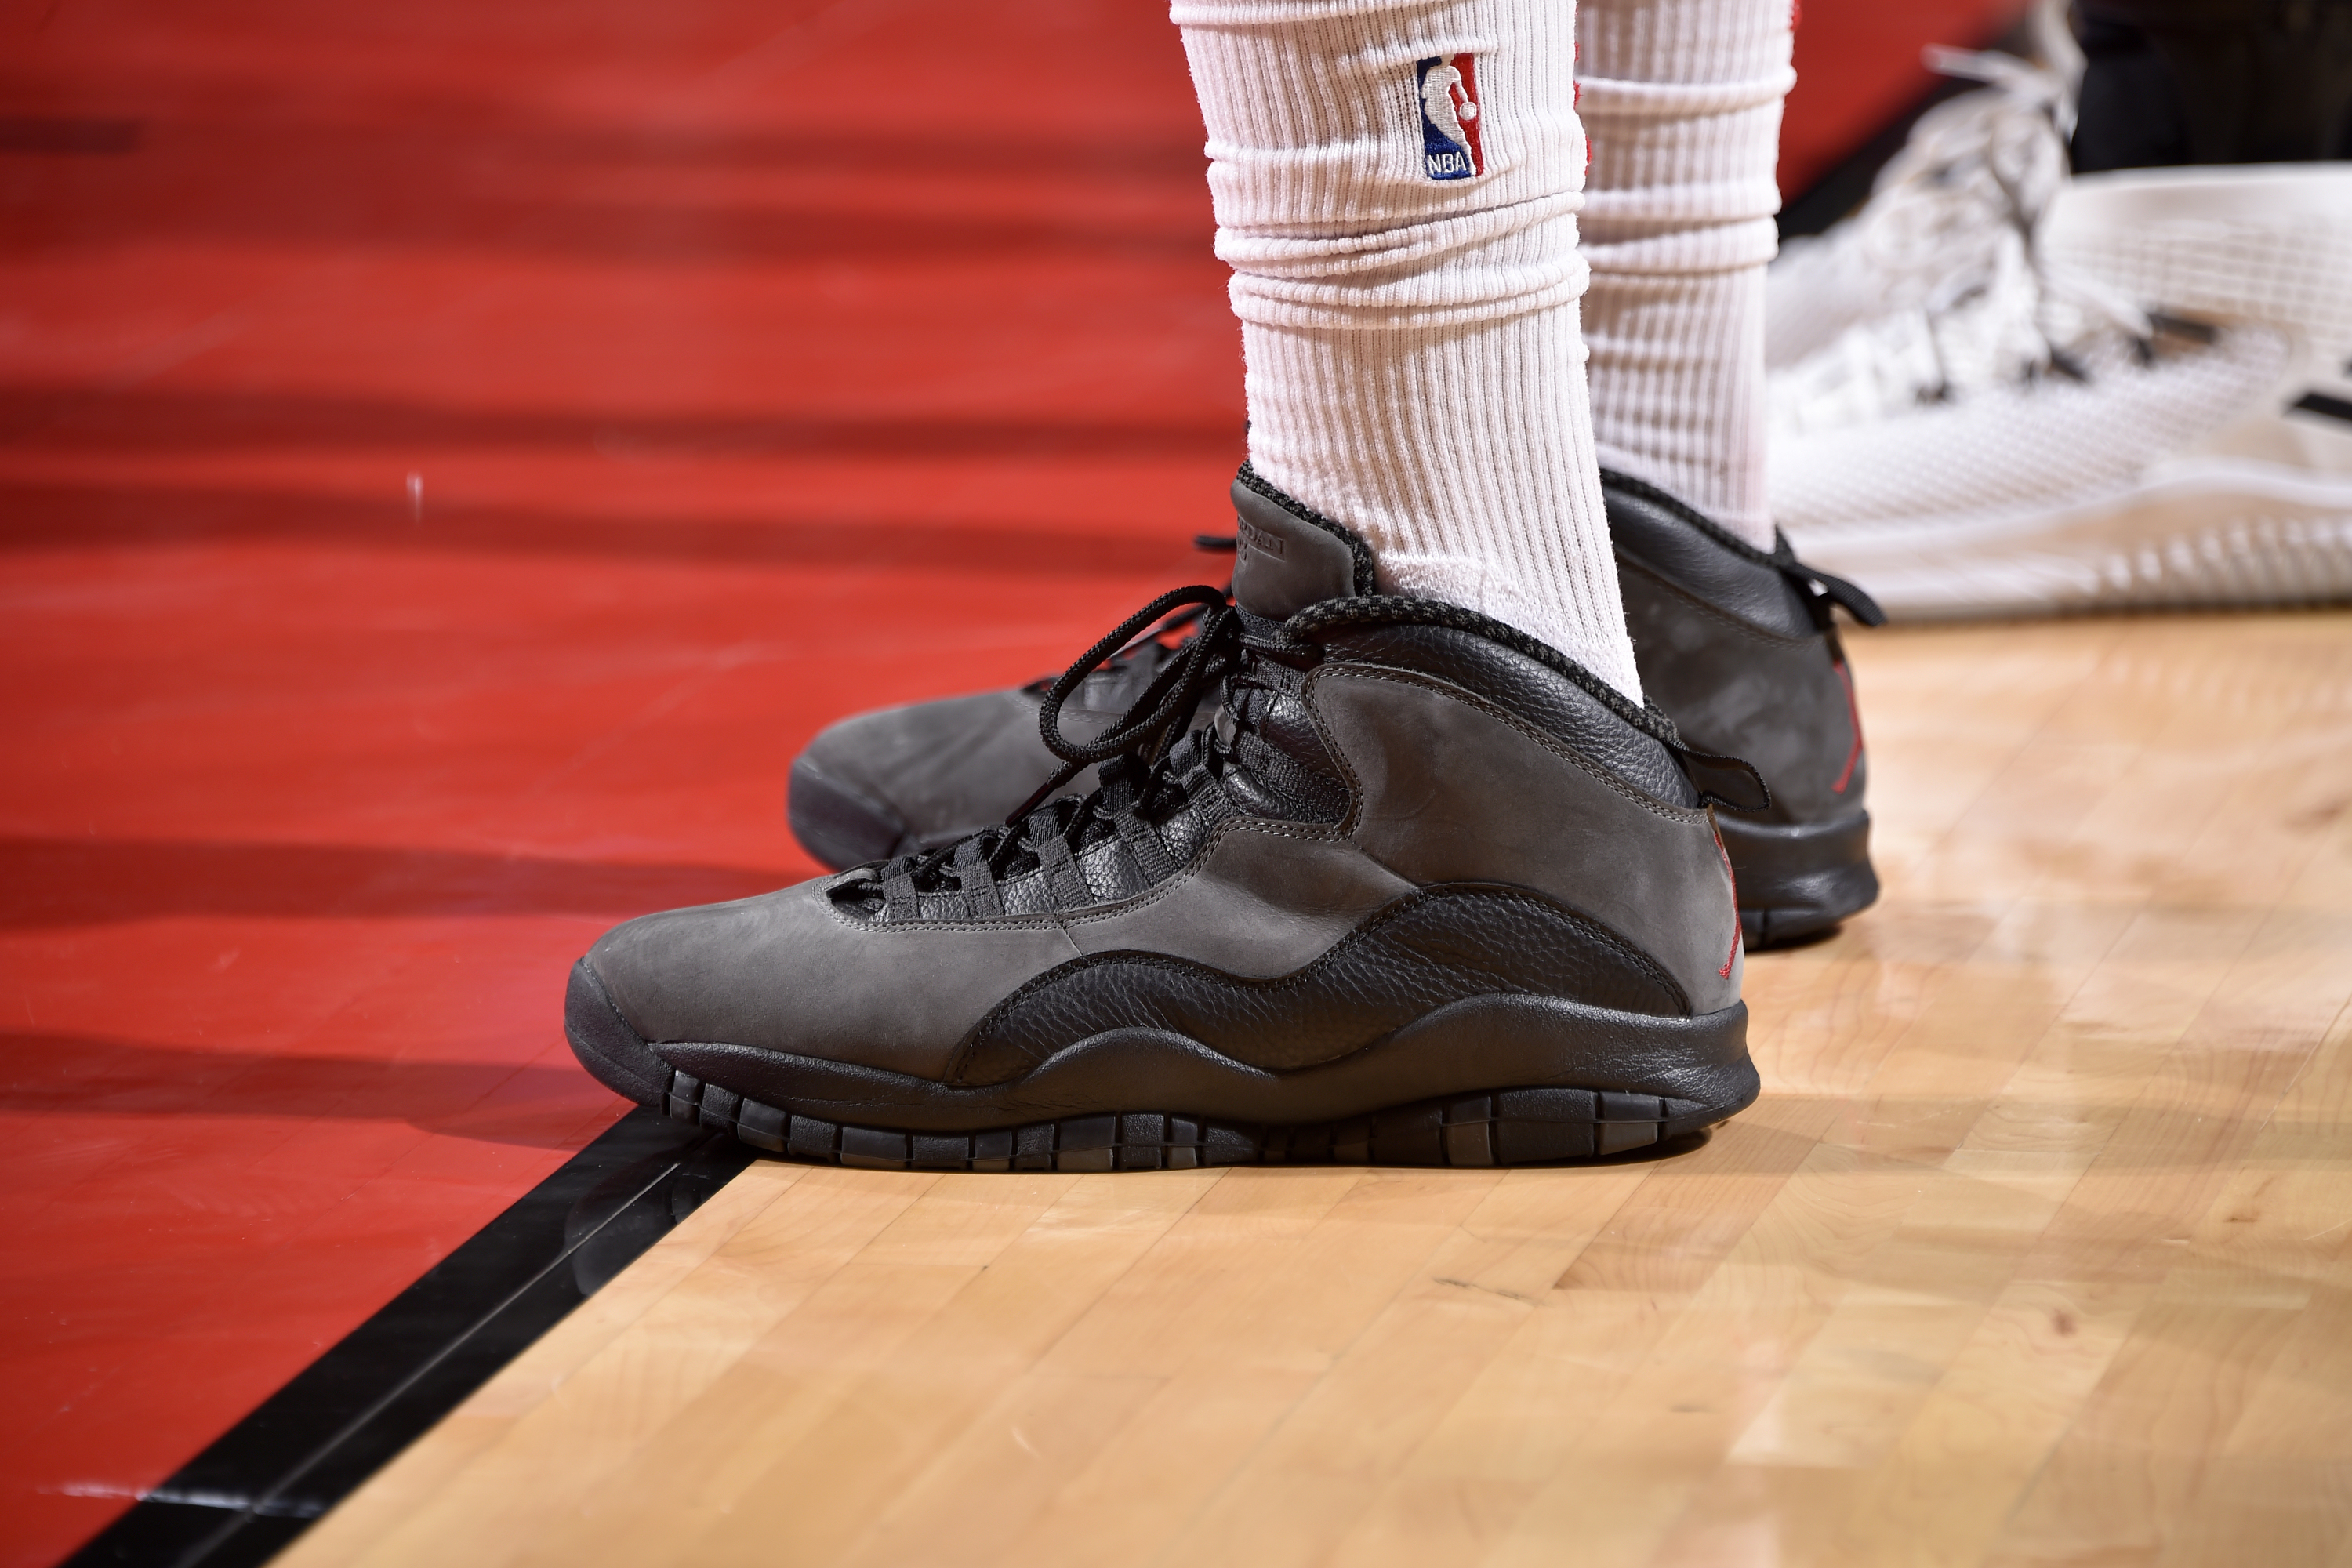 75265b1f990 The sneakers of P.J. Tucker of the Houston Rockets during the second half  of Game 5 against the Minnesota Timberwolves in the first round of the 2018  NBA ...